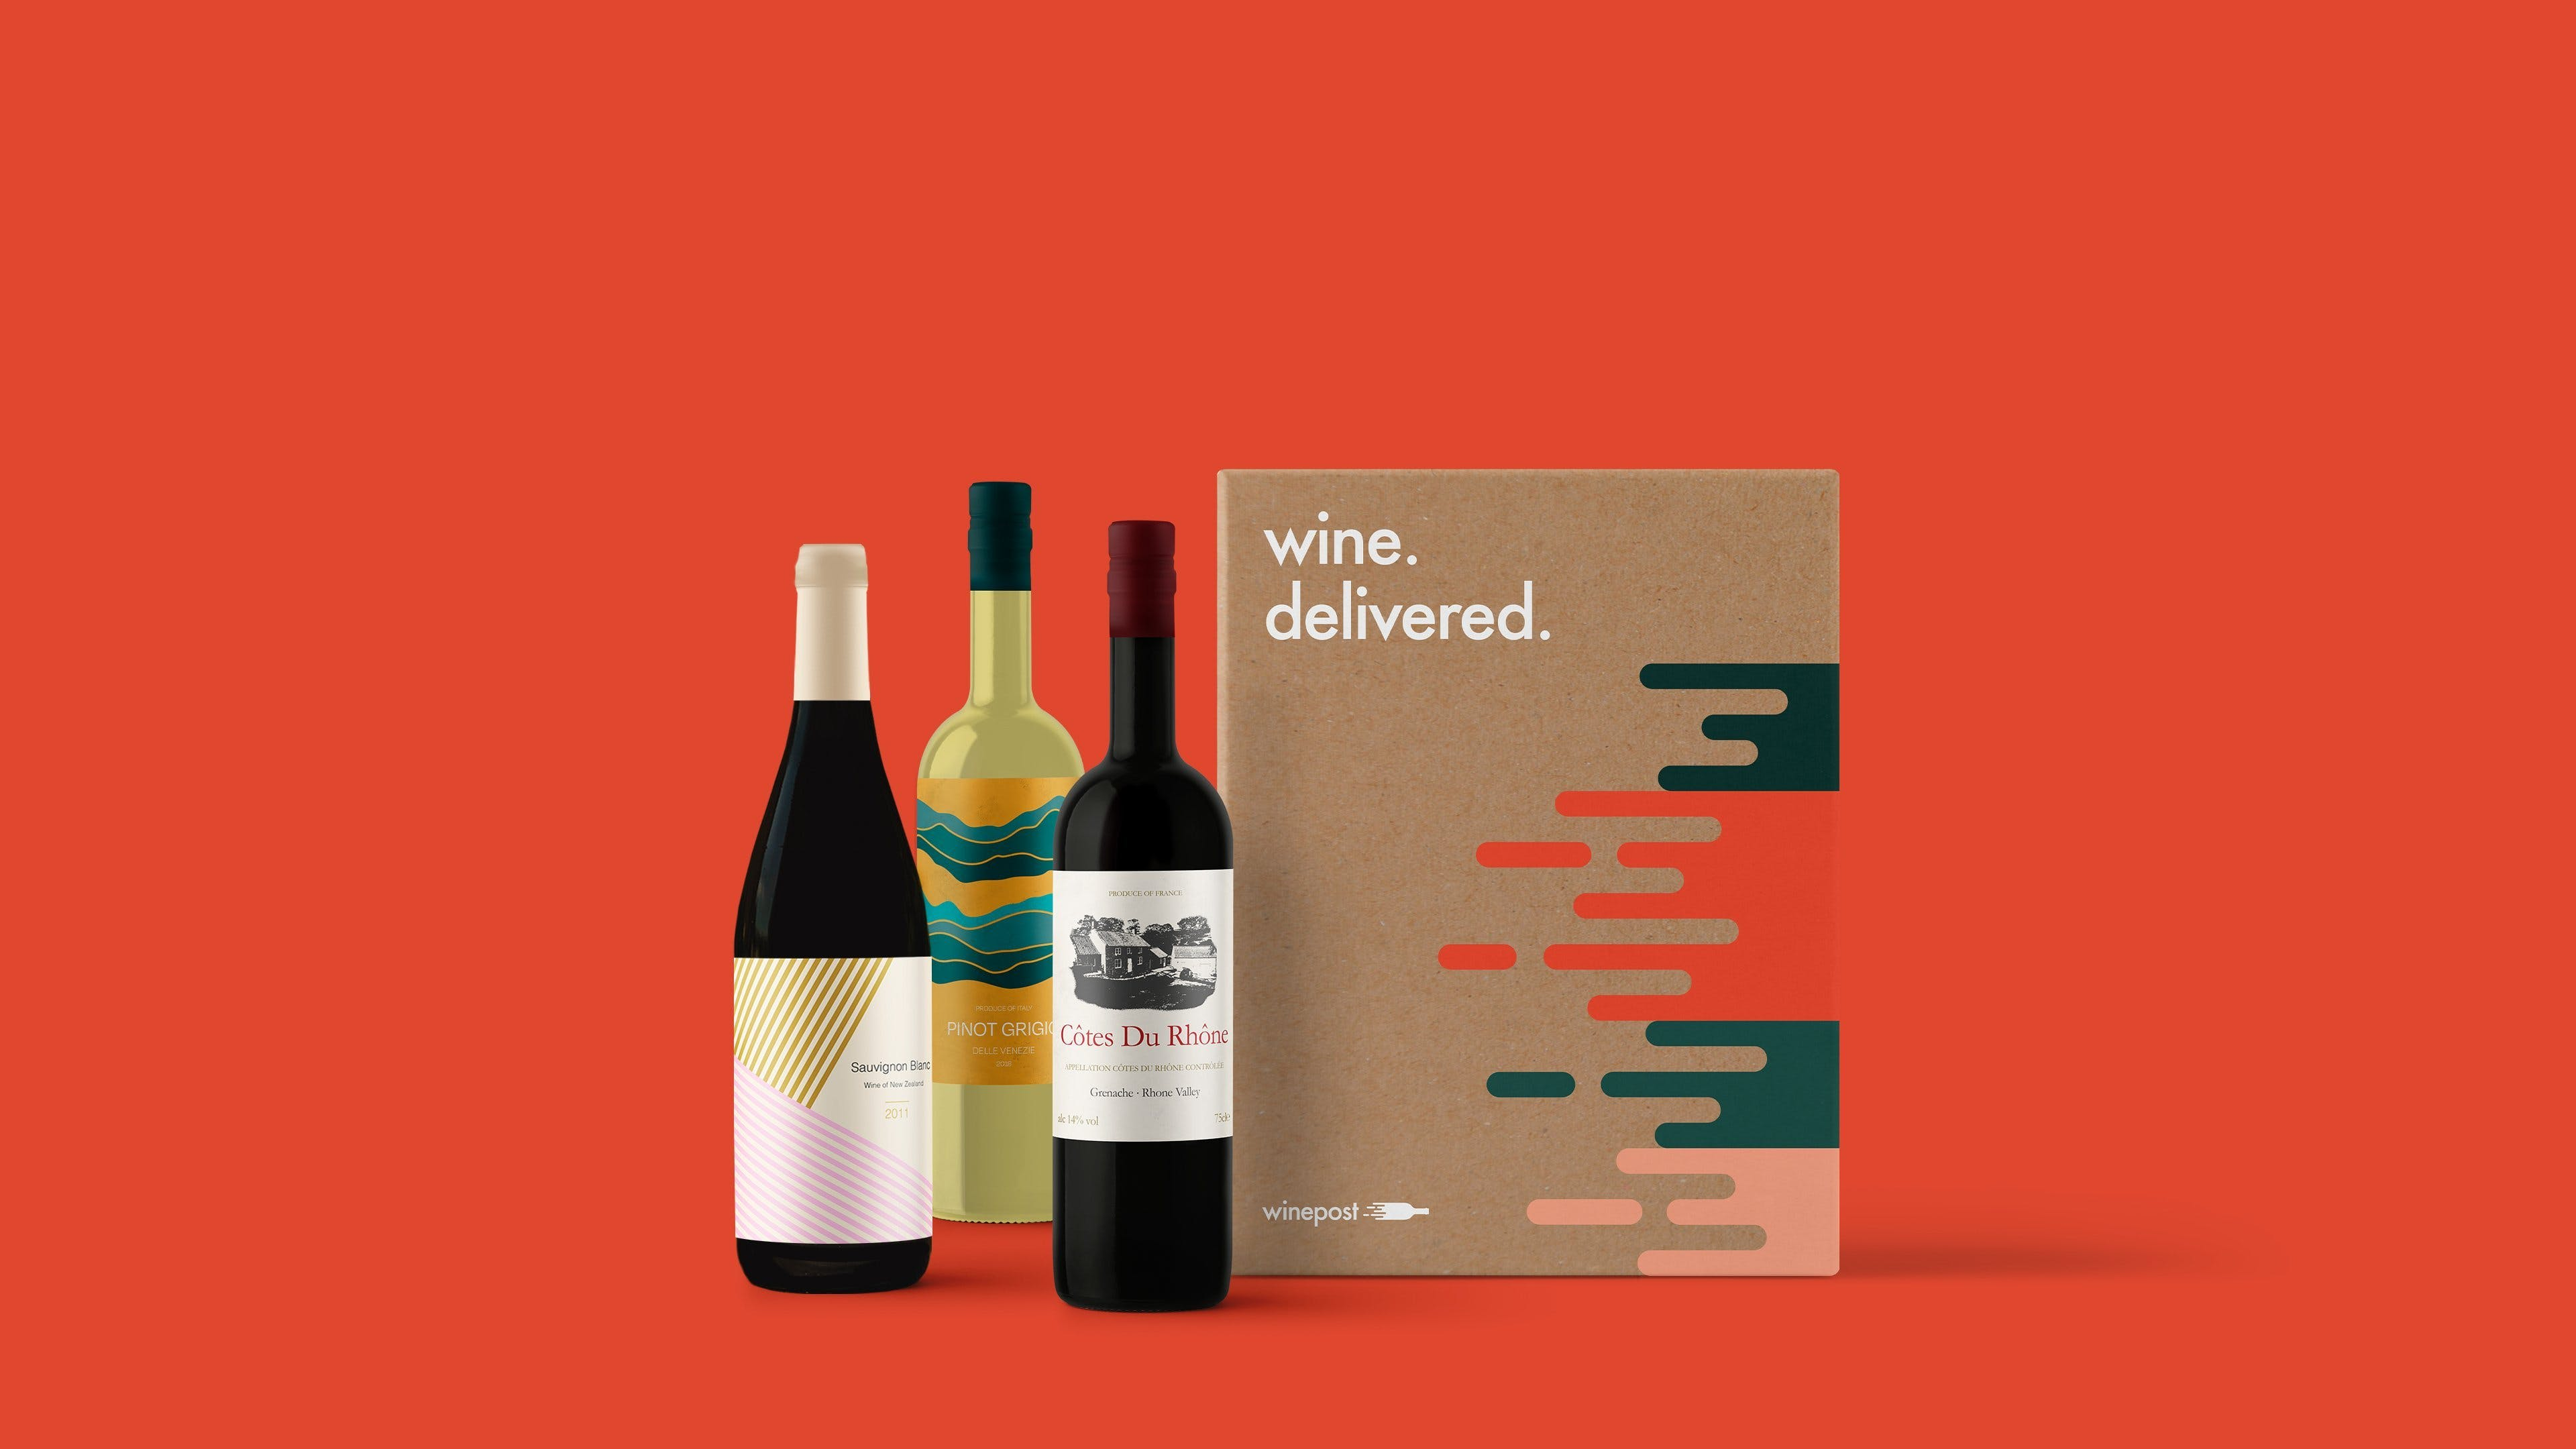 3 bottles of wine next to box with red background